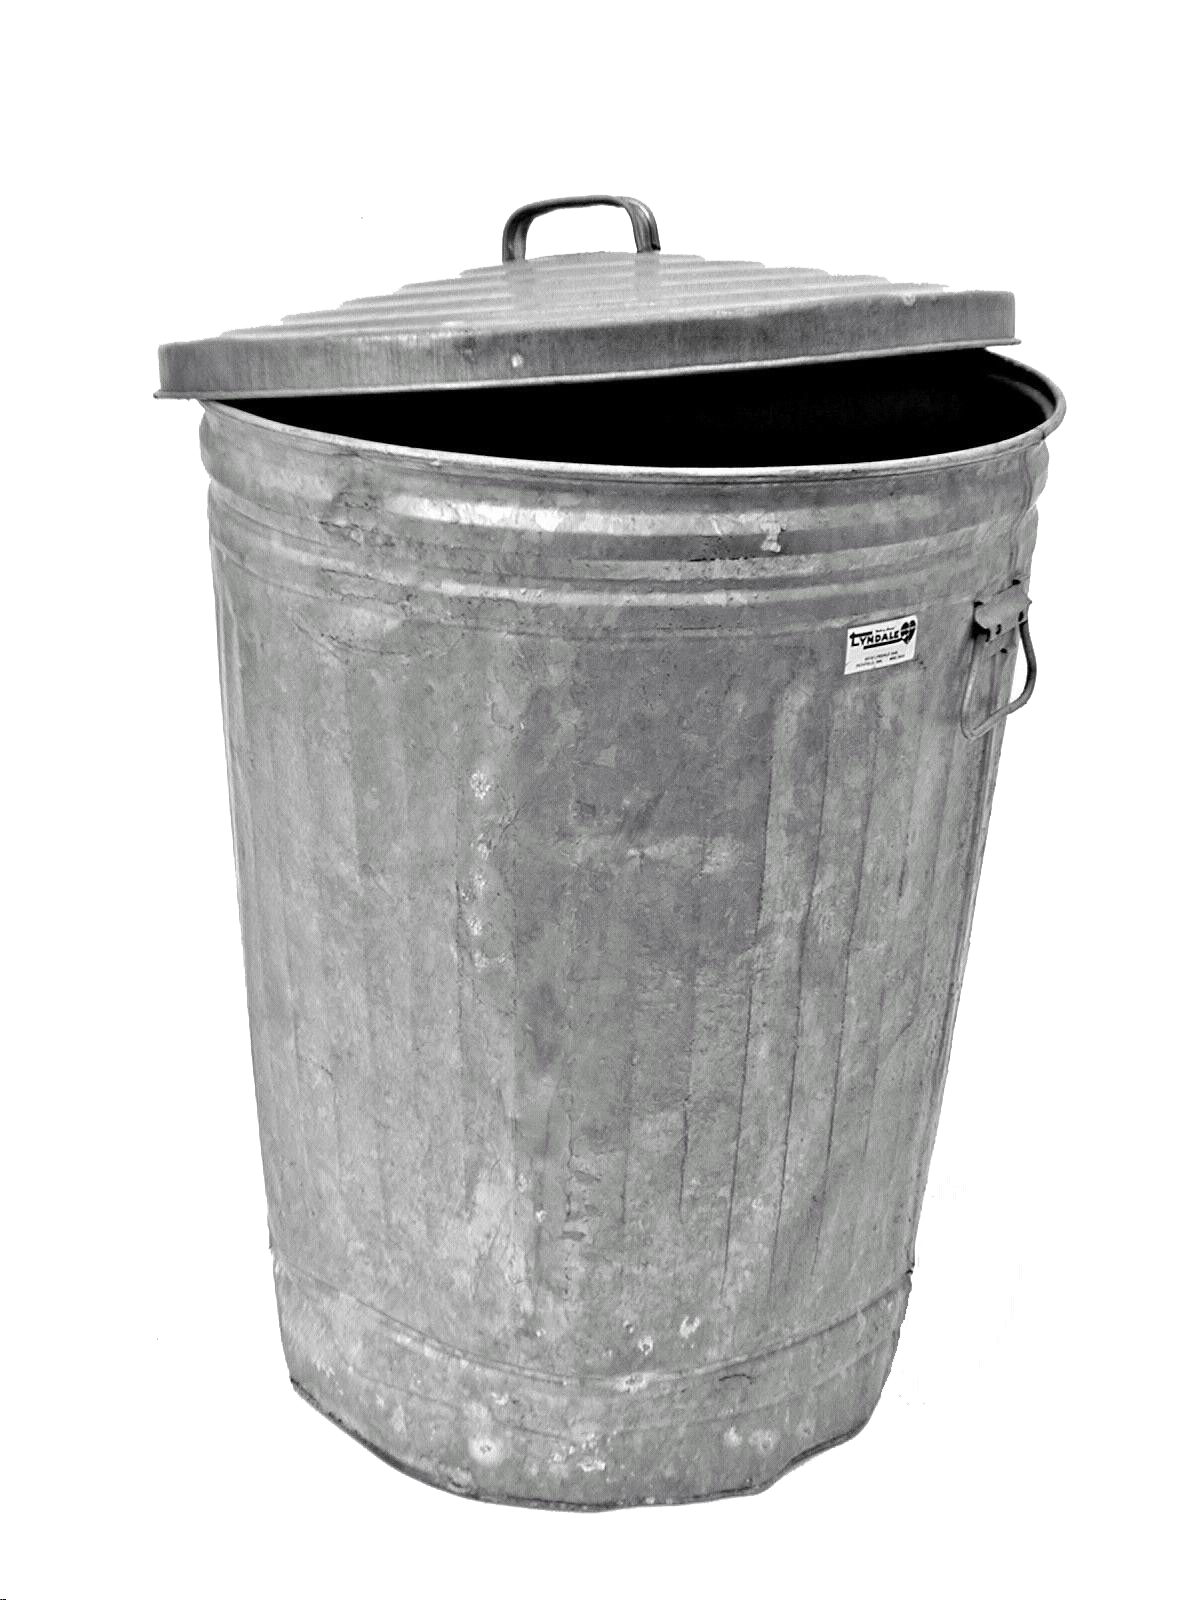 Trashcan PNG HD